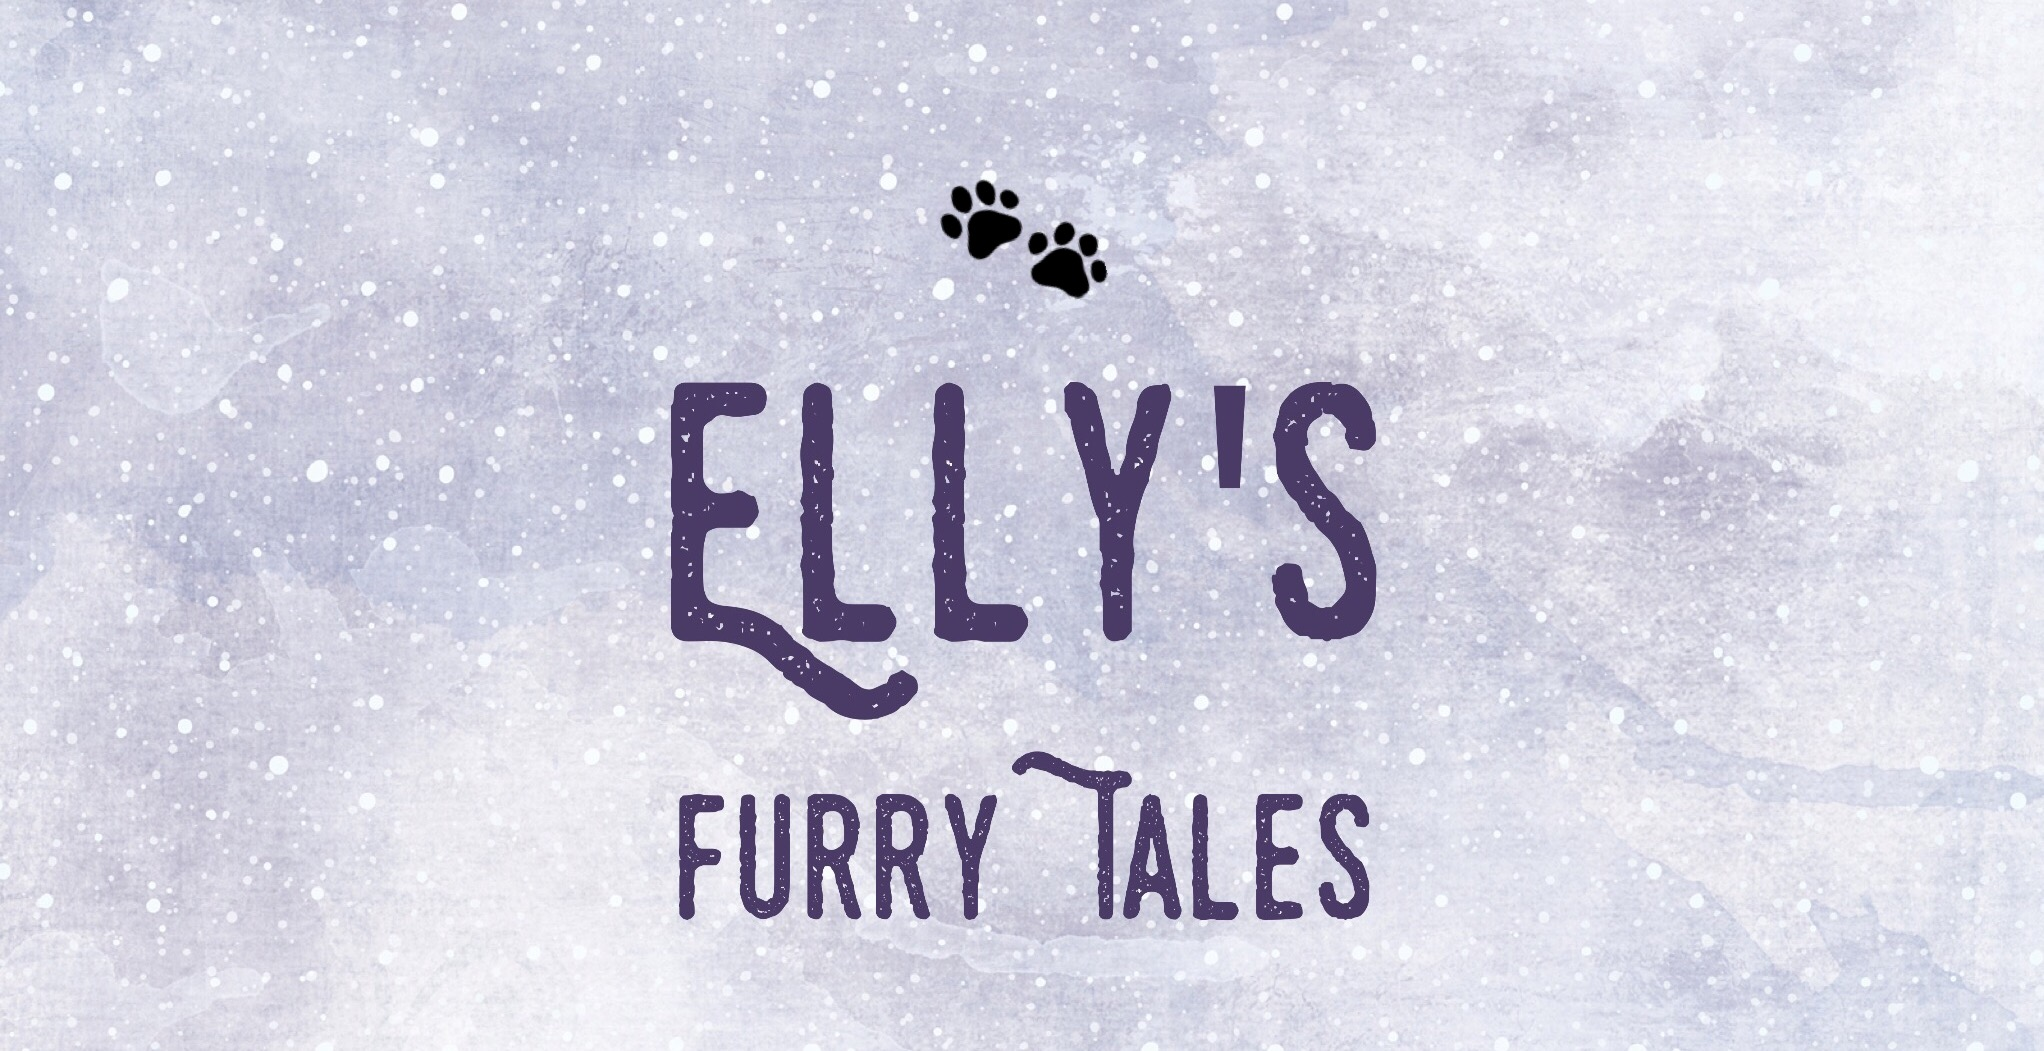 Elly's Furry Tales